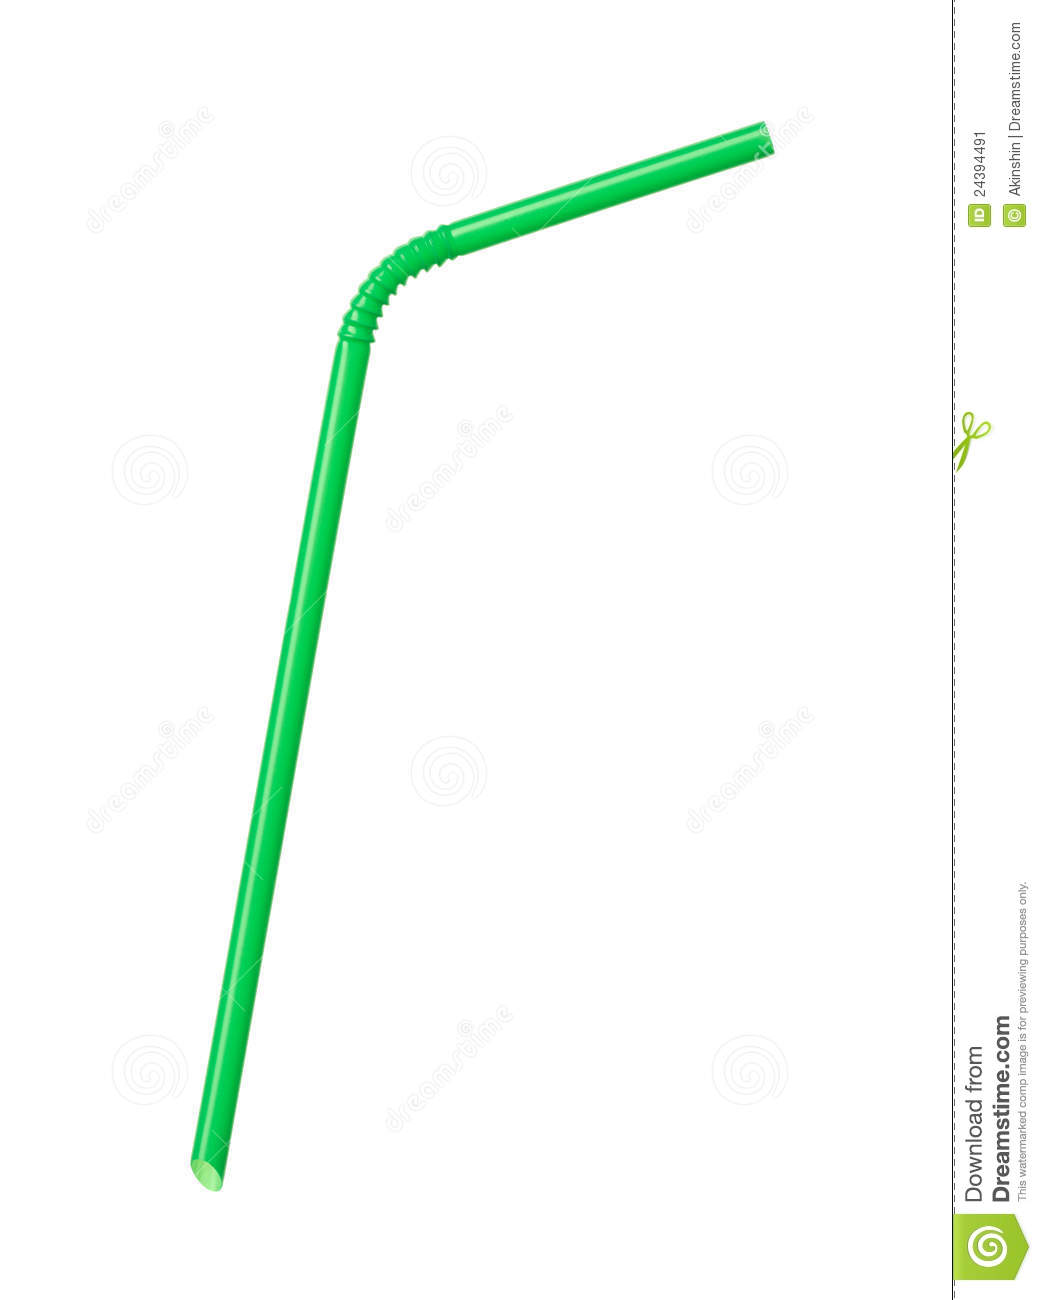 Drinking Straw Stock Image - Image: 24394491